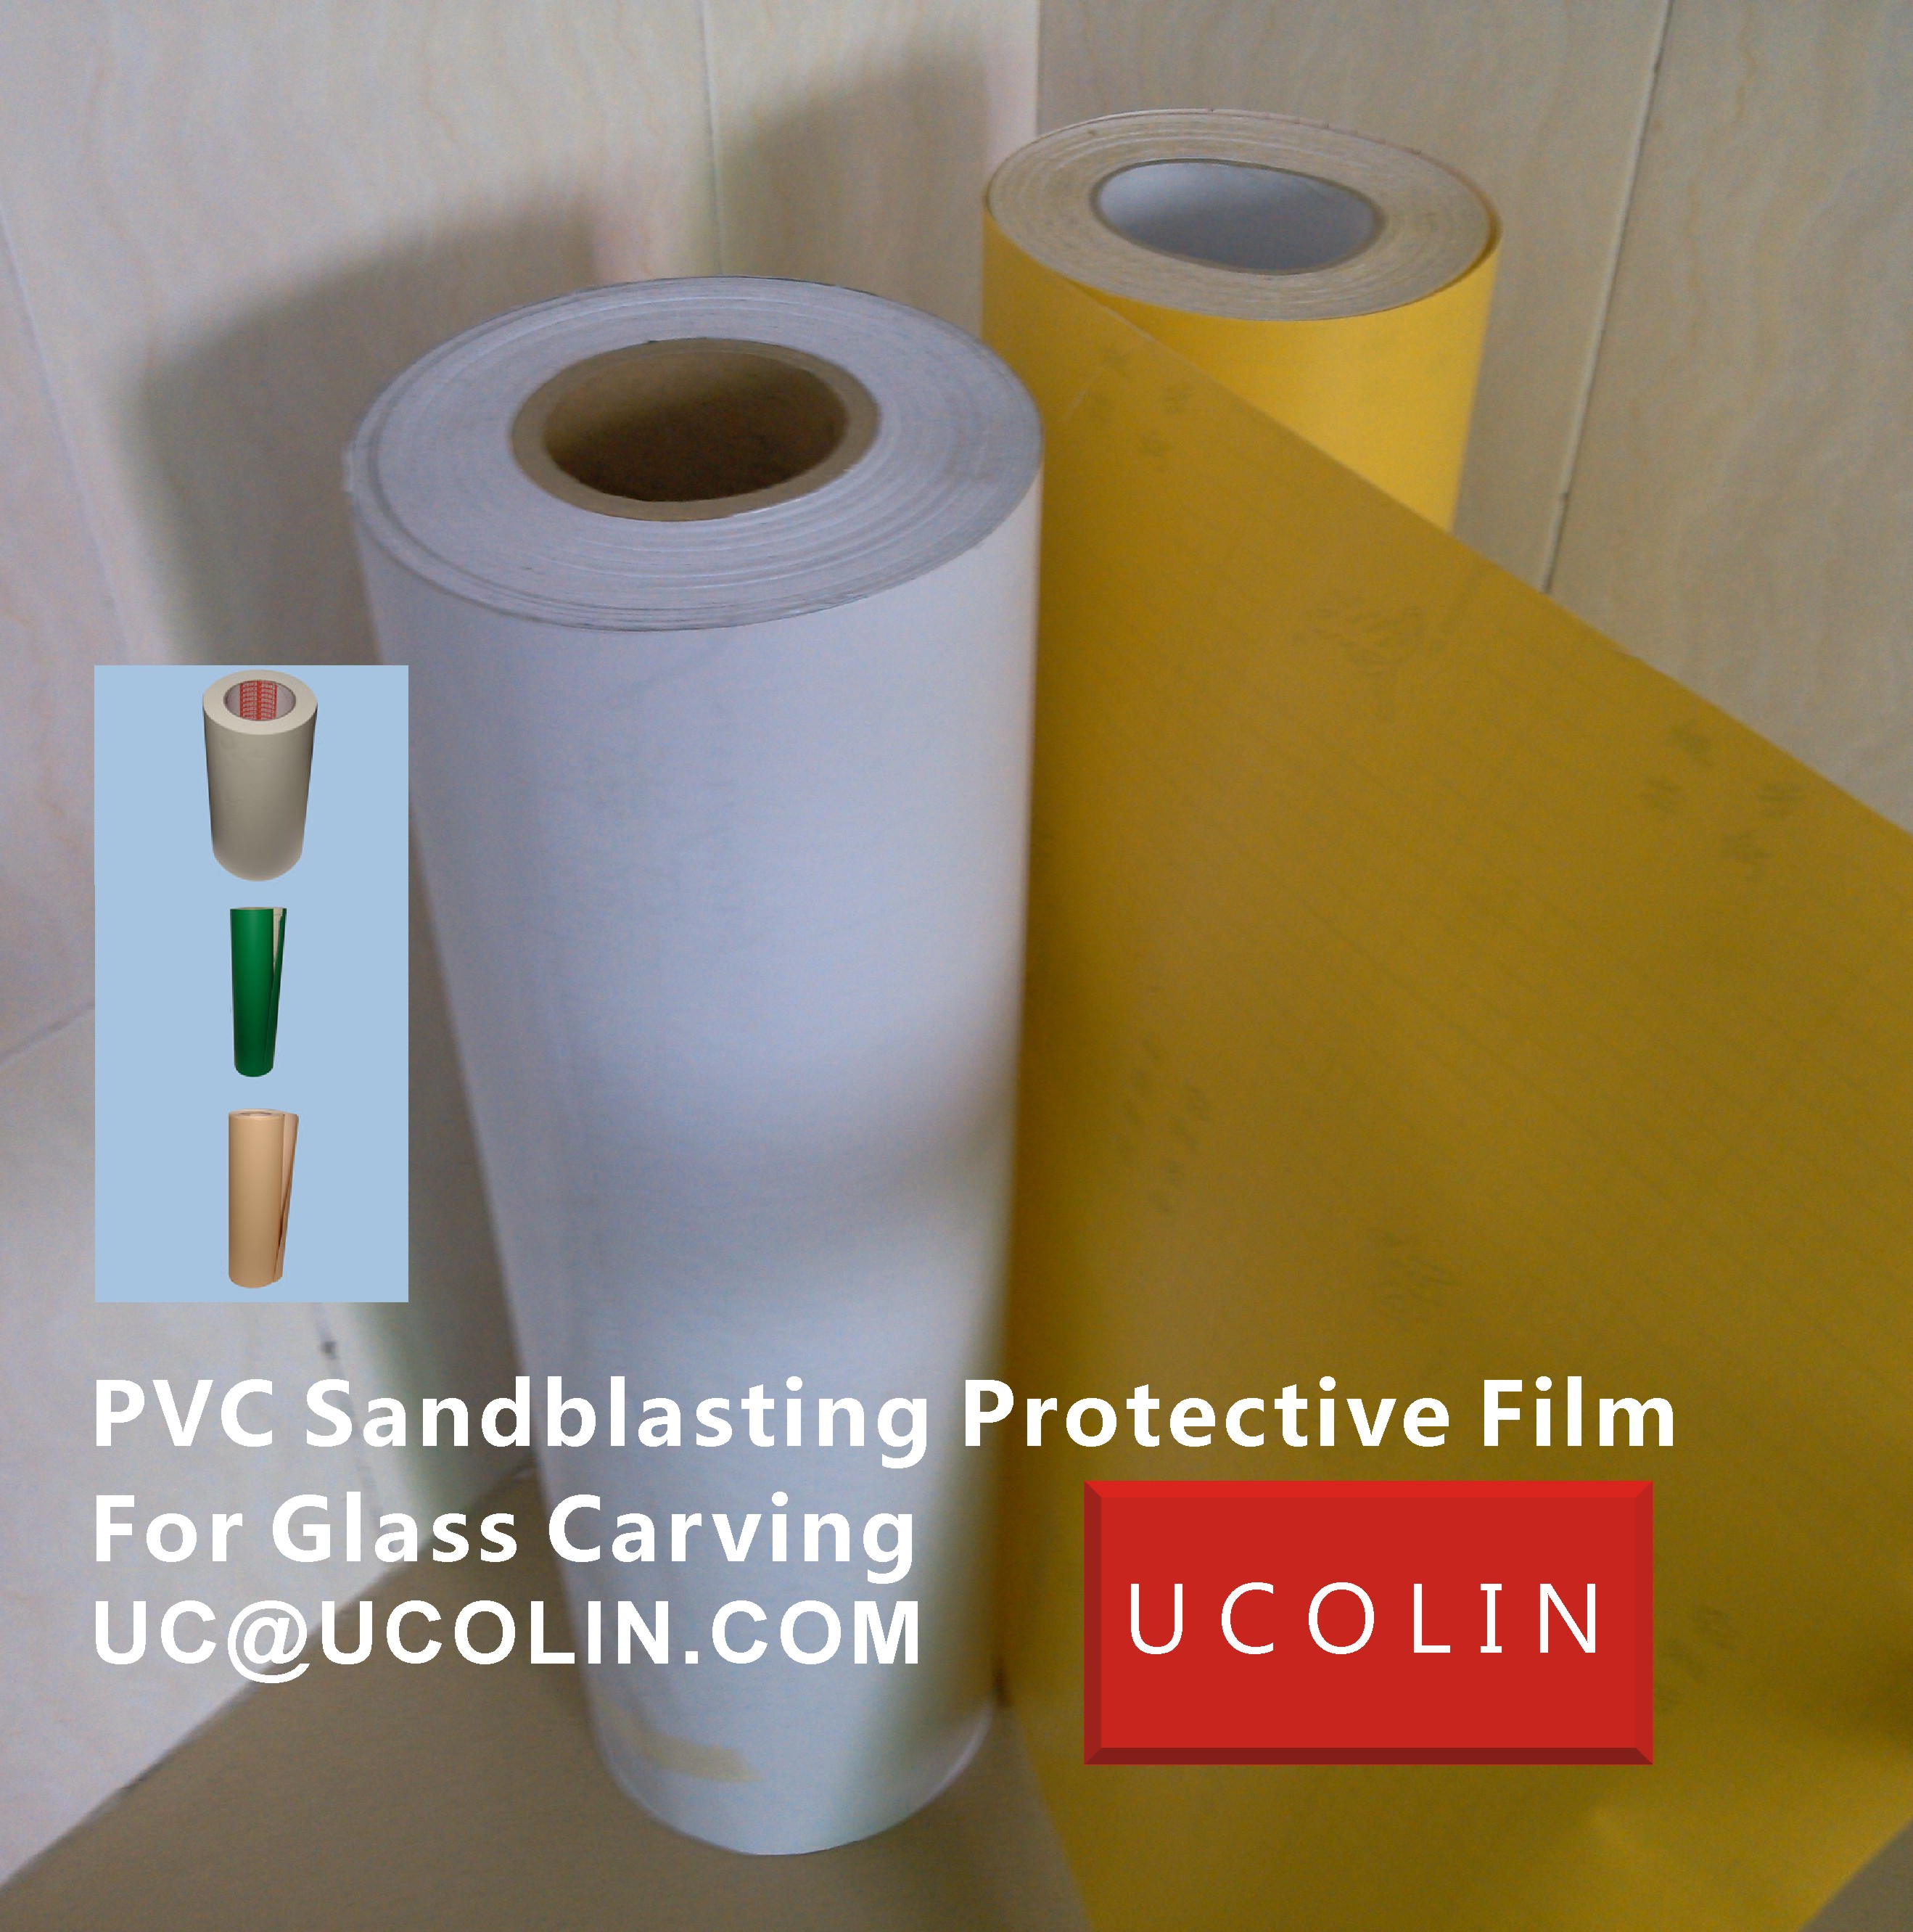 03 PVC Sandblasting Protective Film For Glass Carving